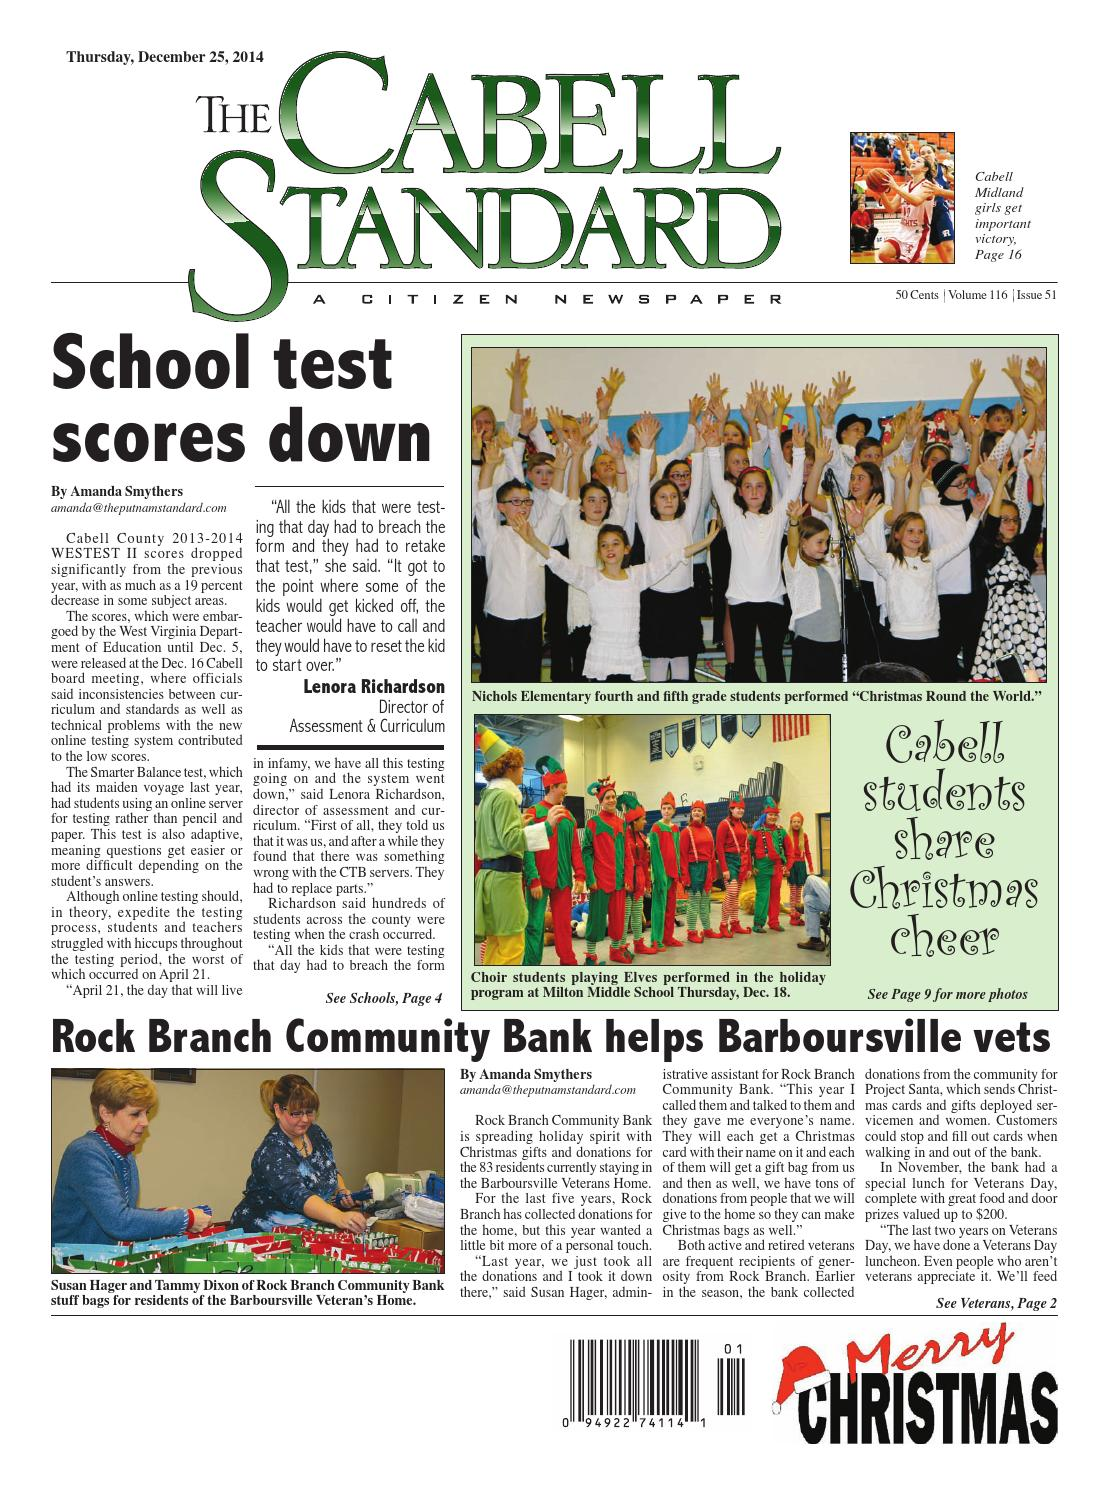 The Cabell Standard, Dec. 25, 2014 by PC Newspapers - issuu